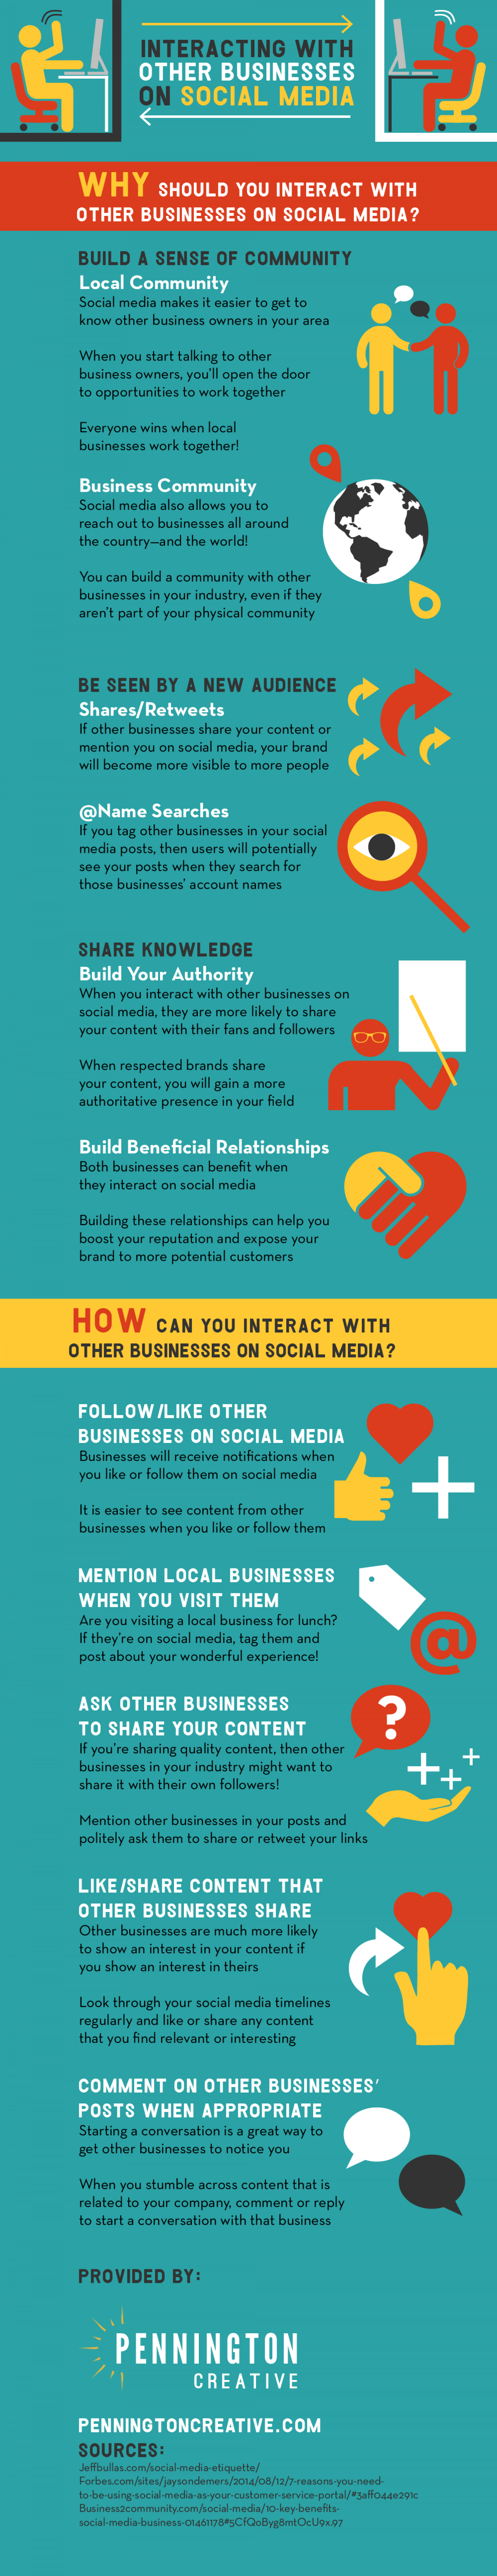 Interacting with Other Businesses on Social Media Infographic